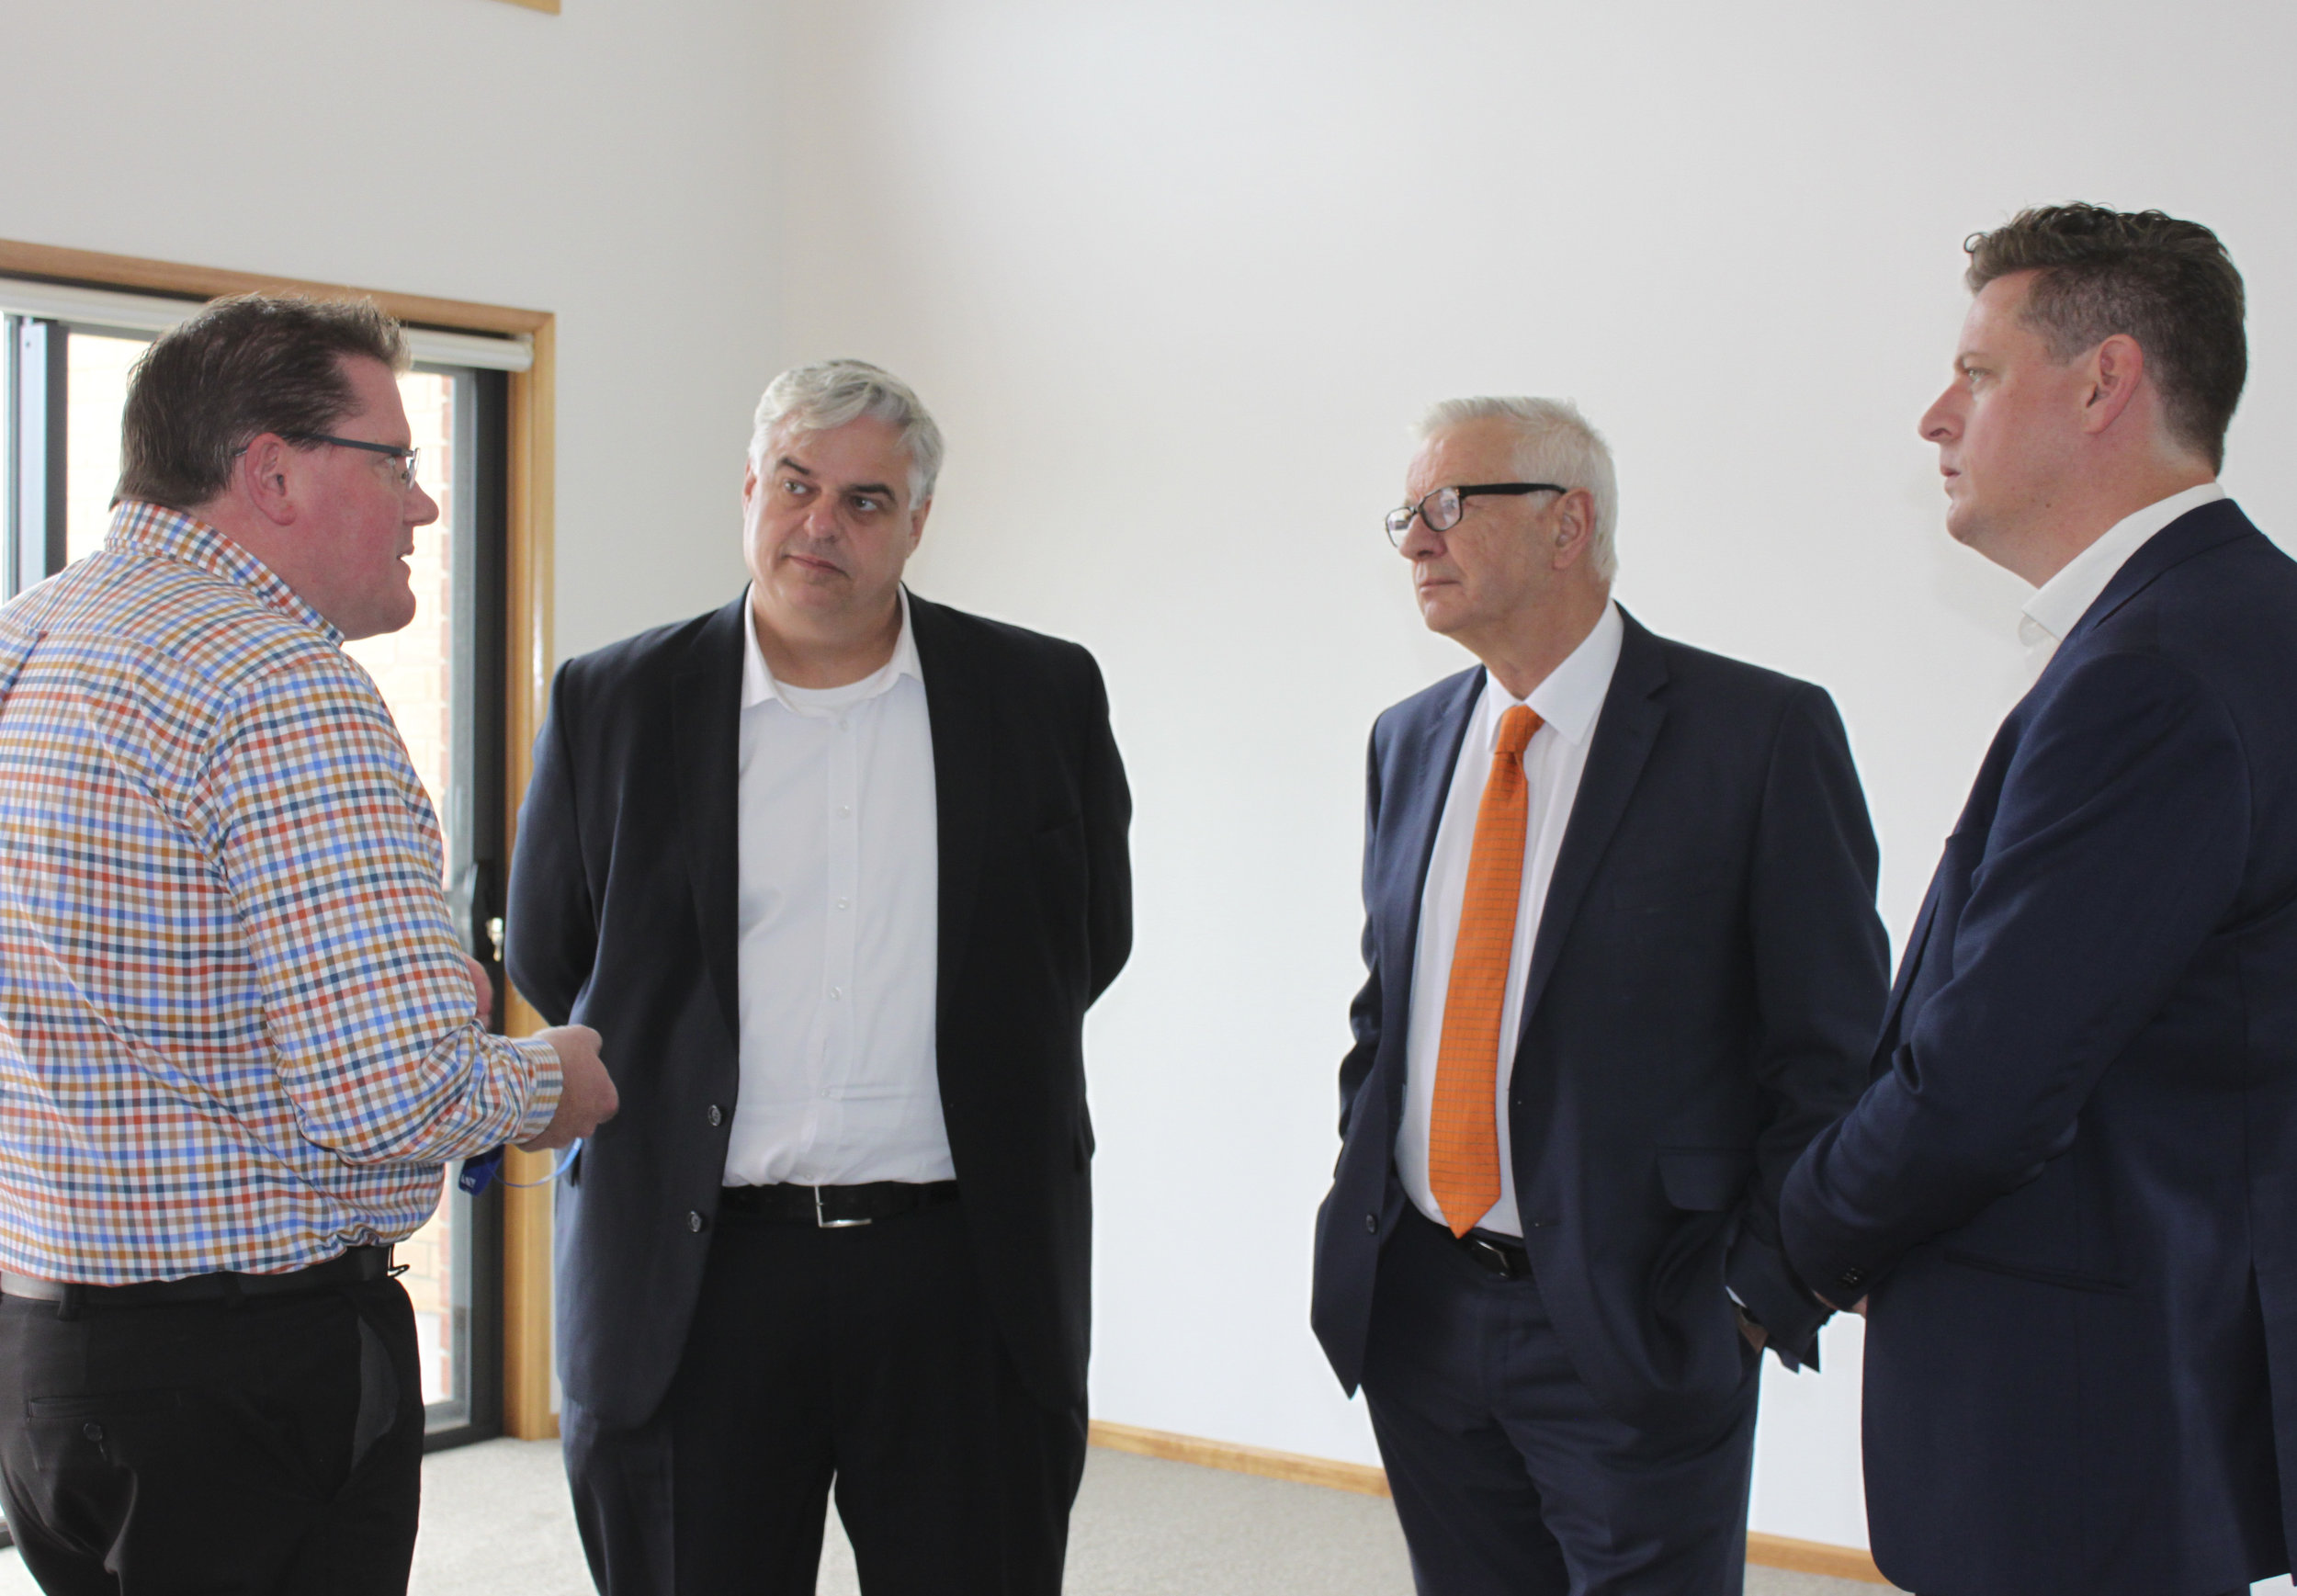 L-R: CatholicCare Director of Housing Services Ben Wilson showing MP for Lyons Brian Mitchell, Senator Doug Cameron and Labor candidate for Clark Ben McGregor through on one of the newly completed units in Green Point Rd.